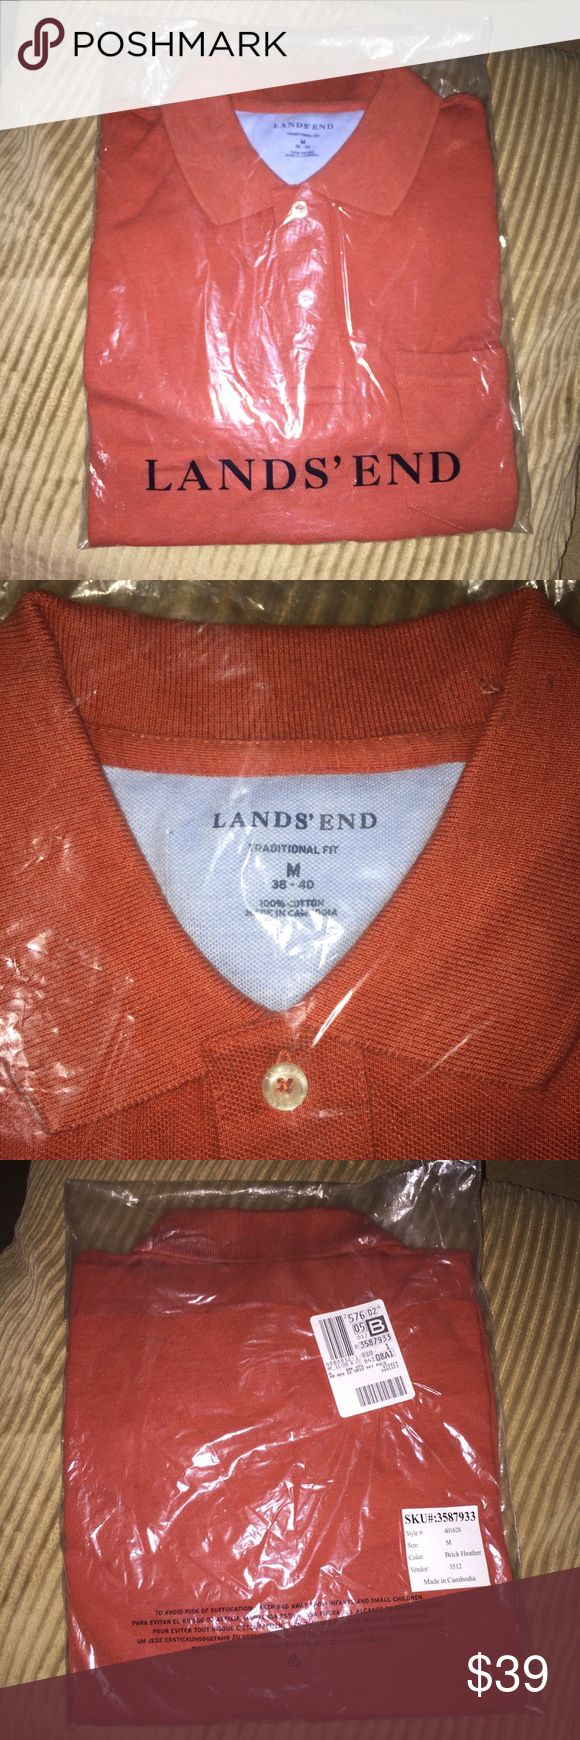 NEW! Men's Lands End Pocket Polo Shirt Size Medium JUST listed! Brand New in the package. Ordered online. Men's size medium. Color is Brick Heather. Lands End Polo shirt with a pocket. Please, no trades or Off Poshmark transactions. Unless there is a red sold sign on the bottom corner of this listing, this item is 'still available'. Thank You for checking out my closet! Lands' End Shirts Polos